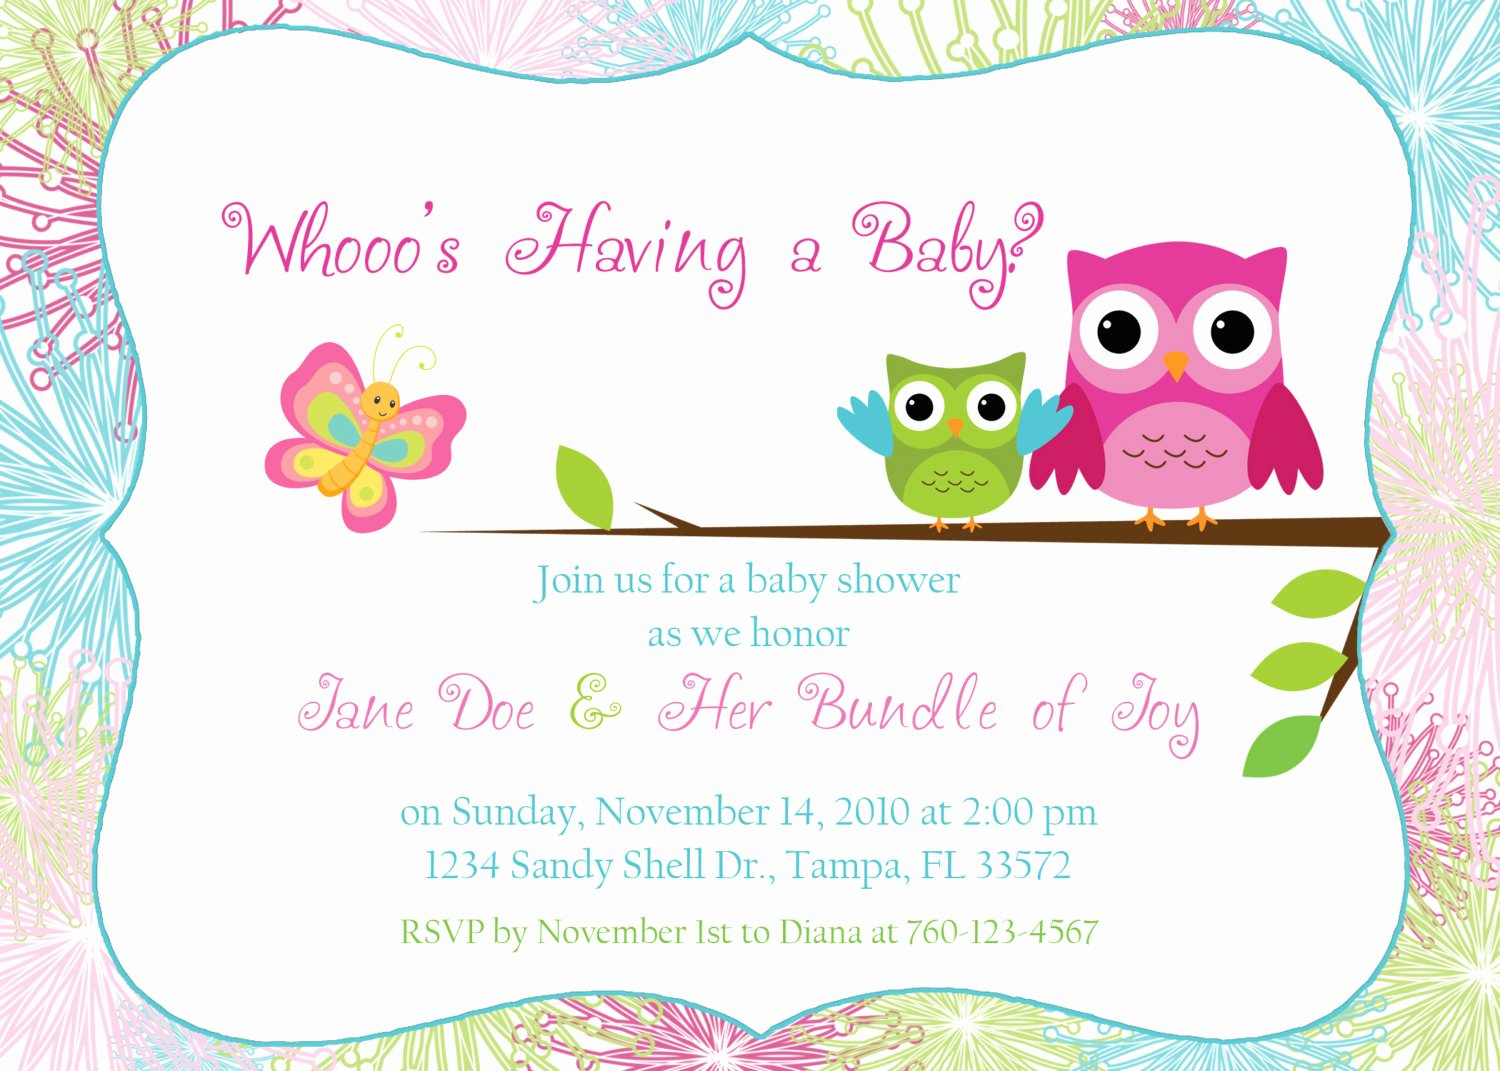 Baby Shower Invitation Free Template Luxury Editable Baby Shower Invitation Templates